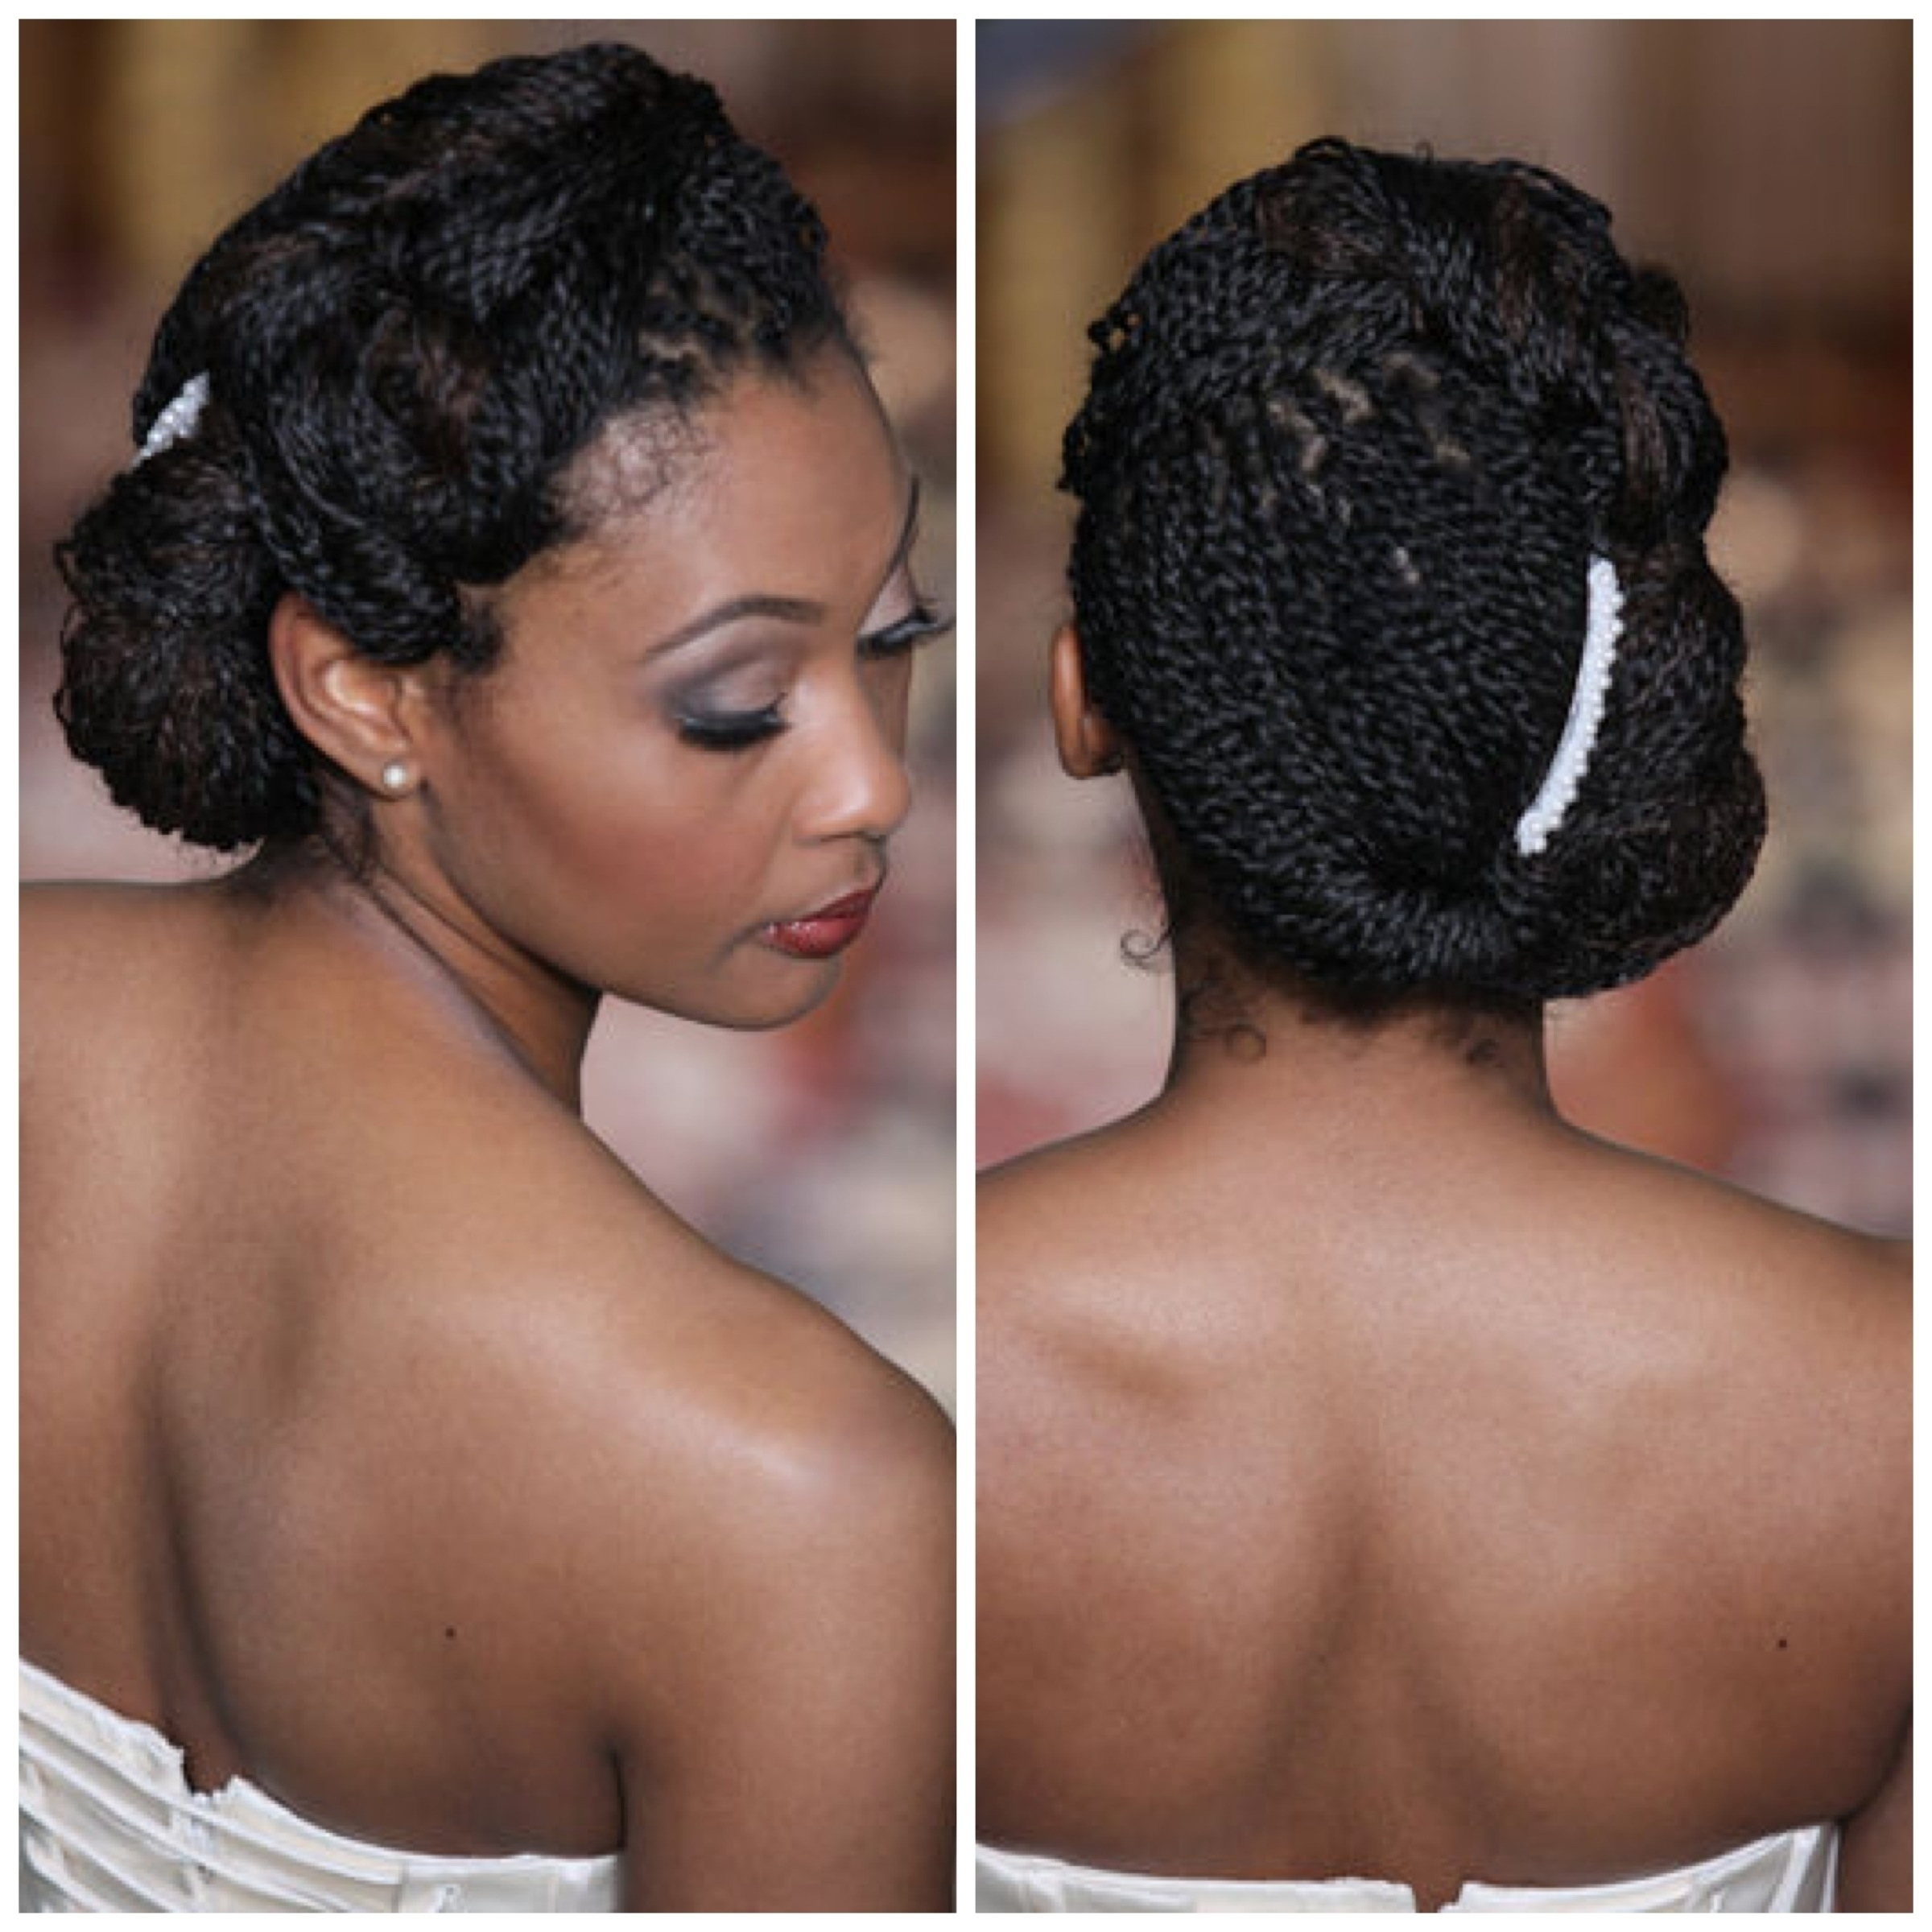 Hairstyles For Black Brides Updo Hairstyles For Black Women Part Inside Black Bride Updo Hairstyles (View 10 of 15)